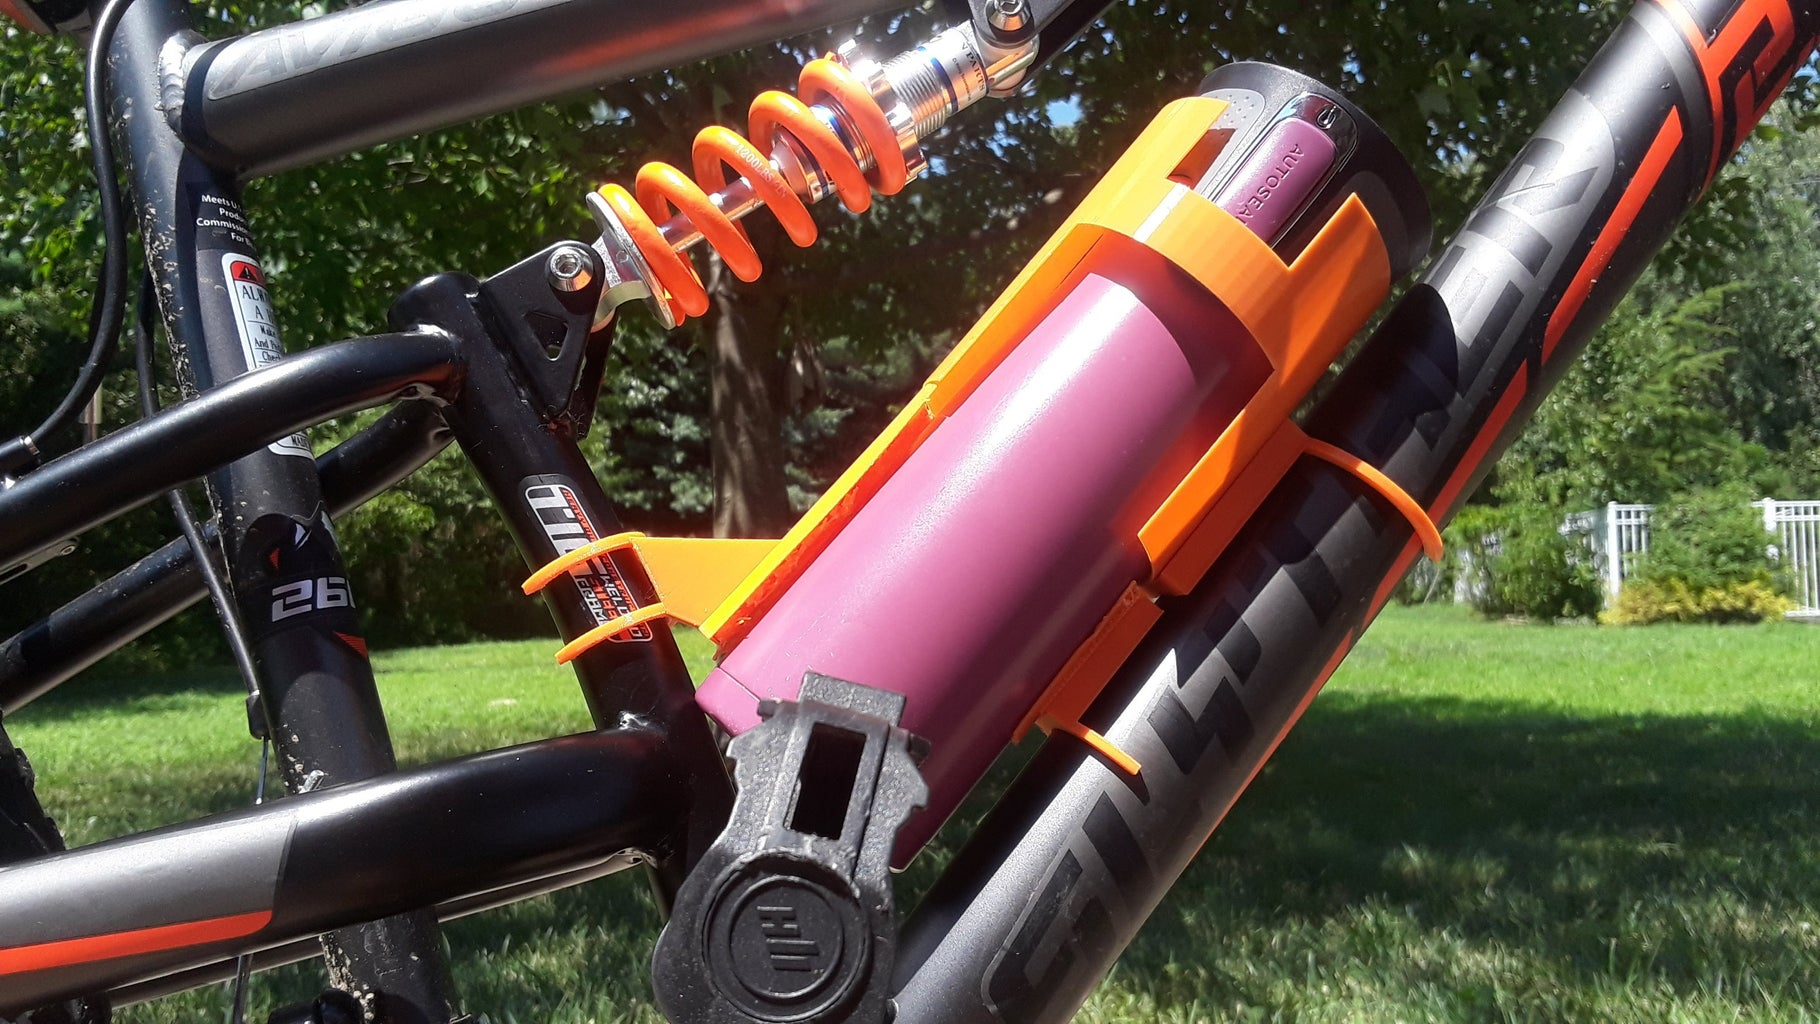 The Main Chassis/Water Bottle Compartment